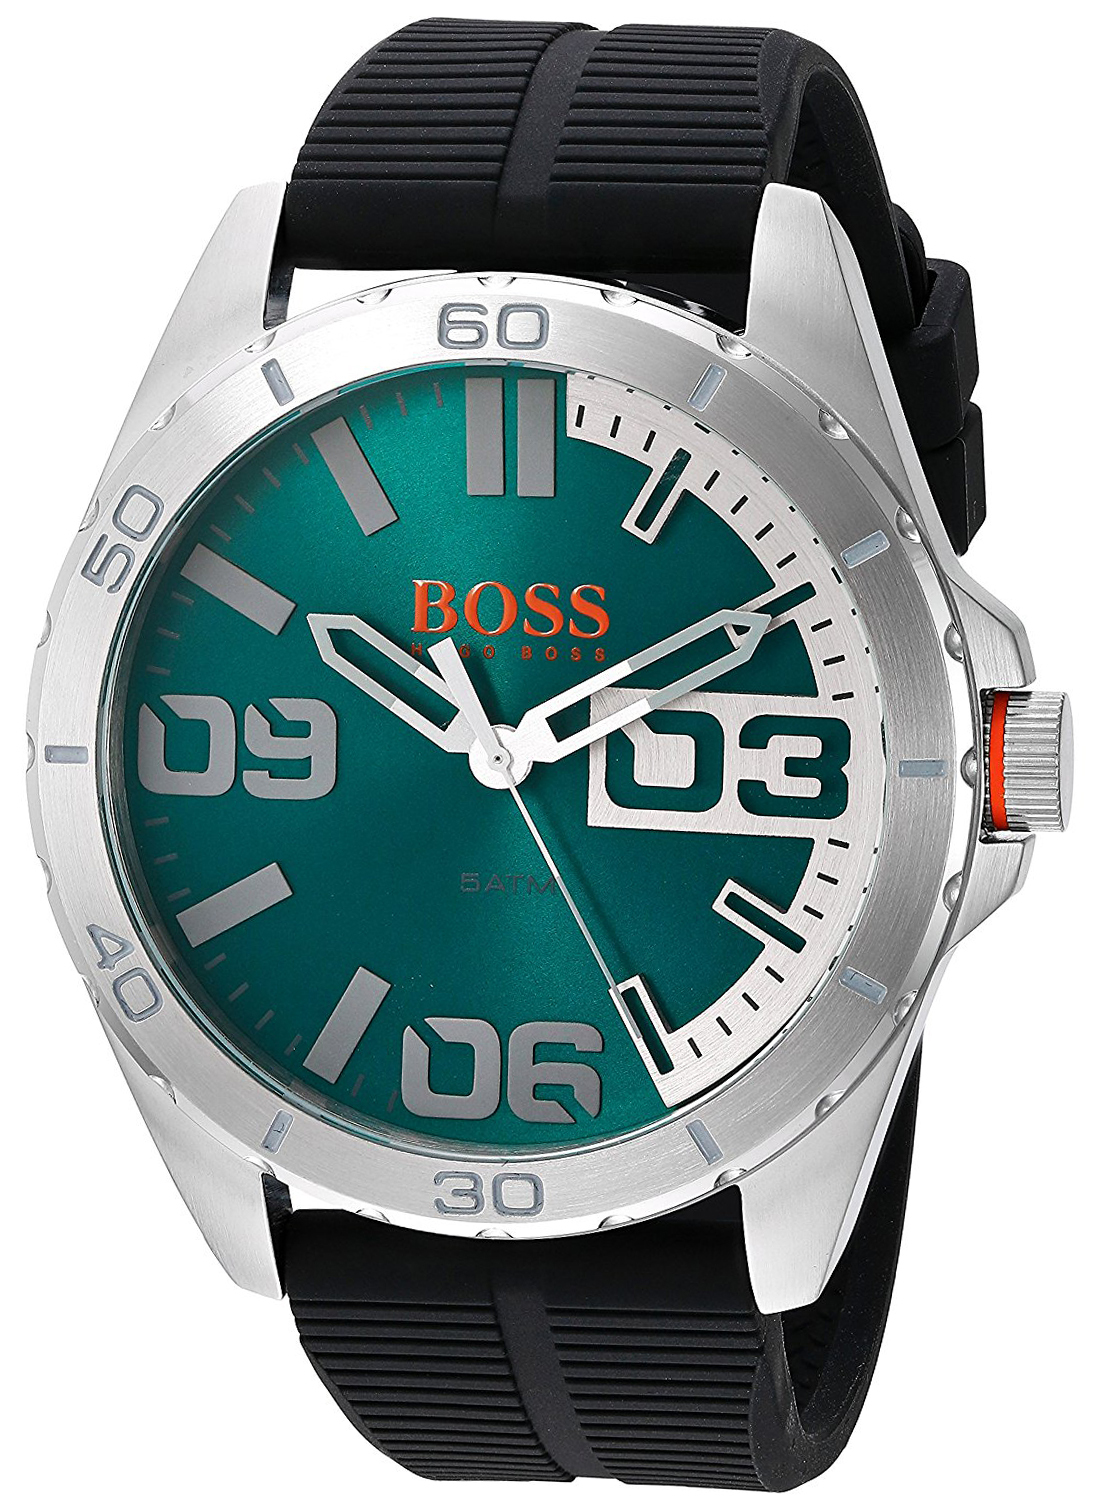 Hugo Boss Berlin Herrklocka 1513381 Grön/Gummi Ø48 mm - Hugo Boss